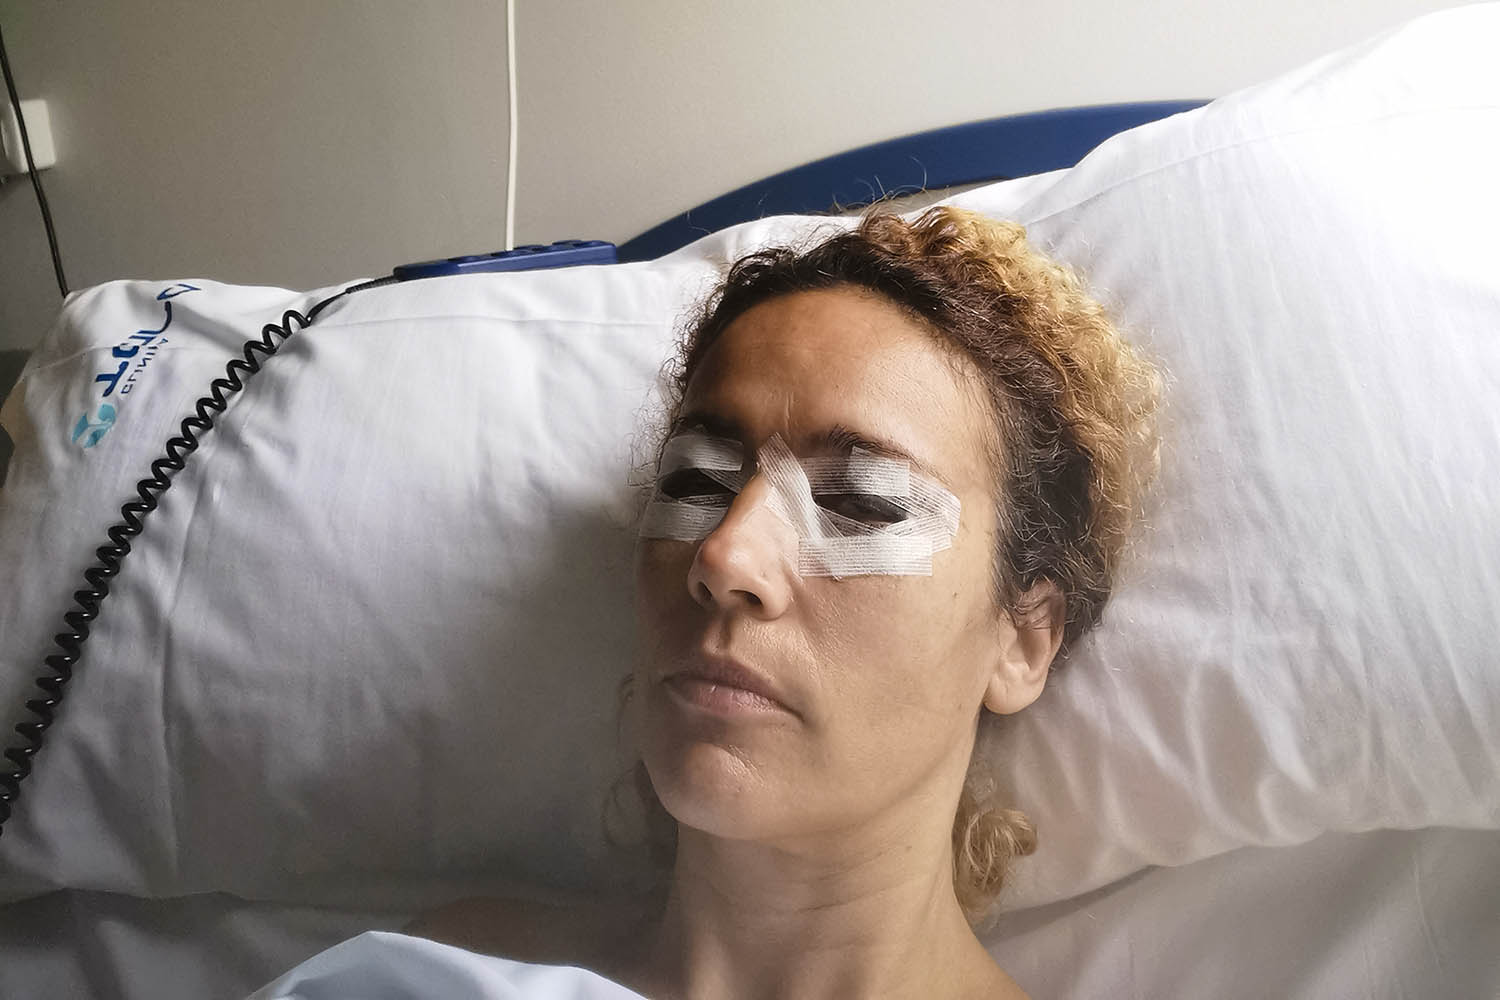 Woman patient in hospital after blepharoplasty